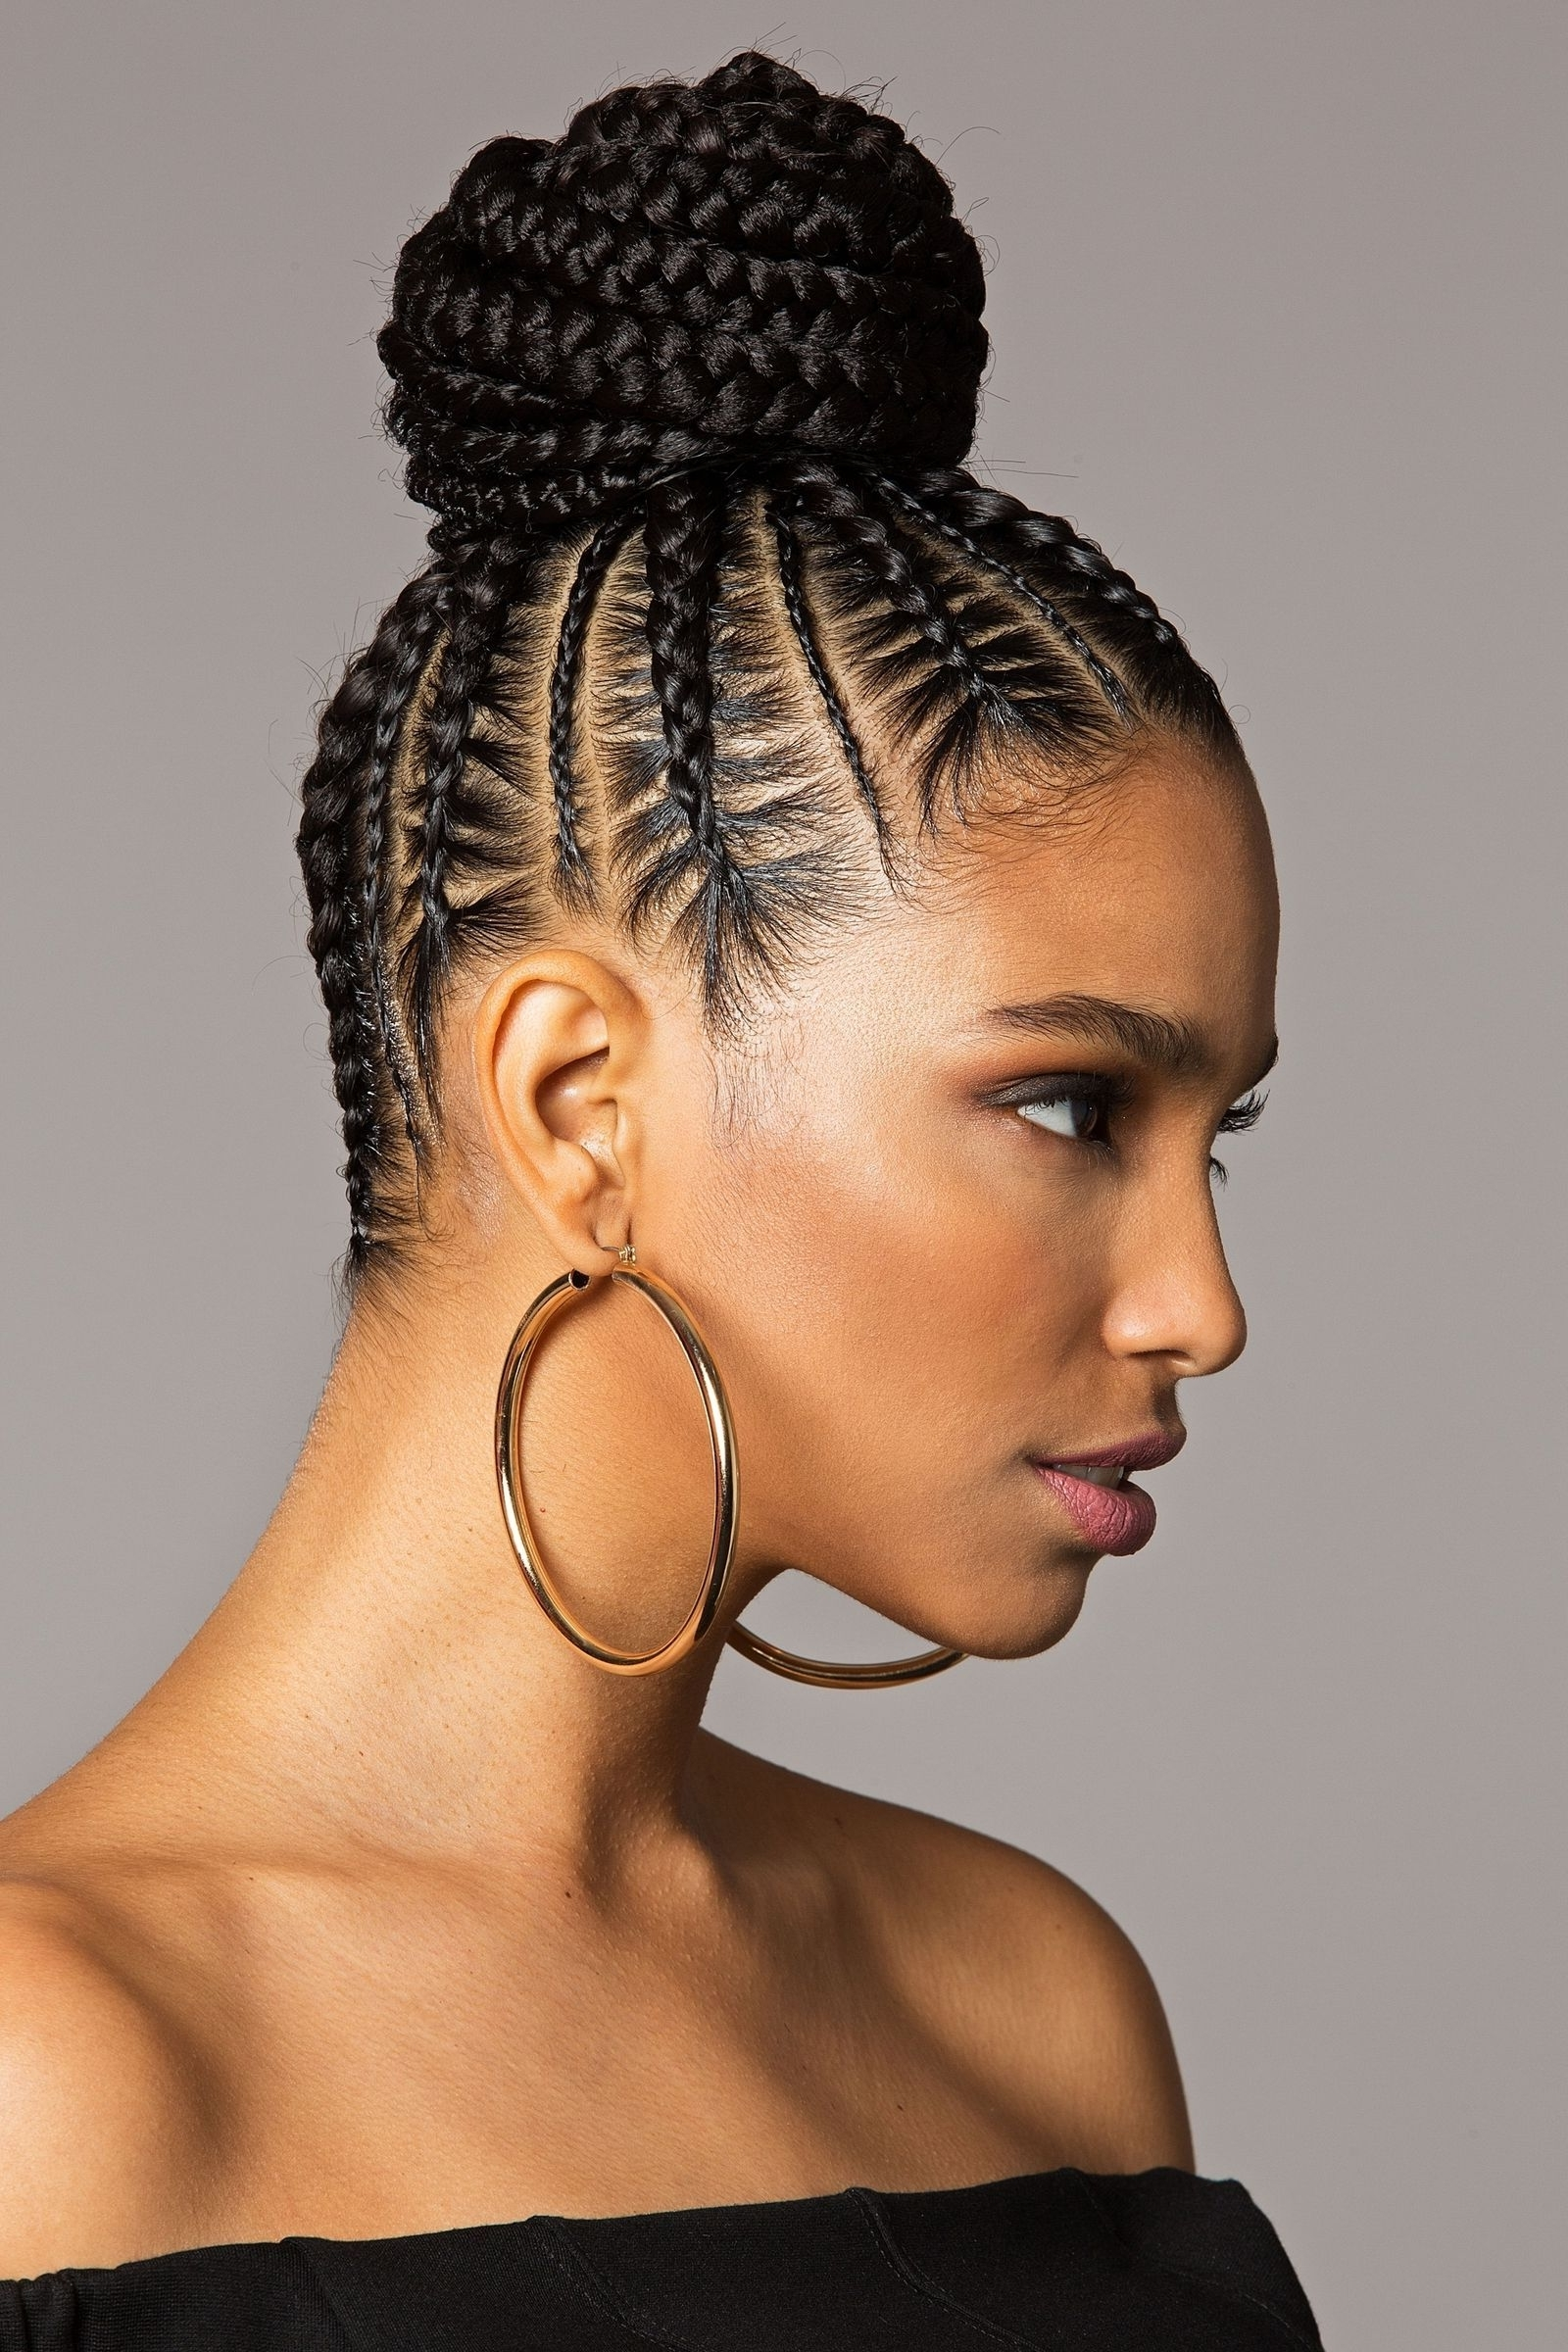 3 Unique Ways To Style Your Hair In A Braided Bun (View 6 of 20)